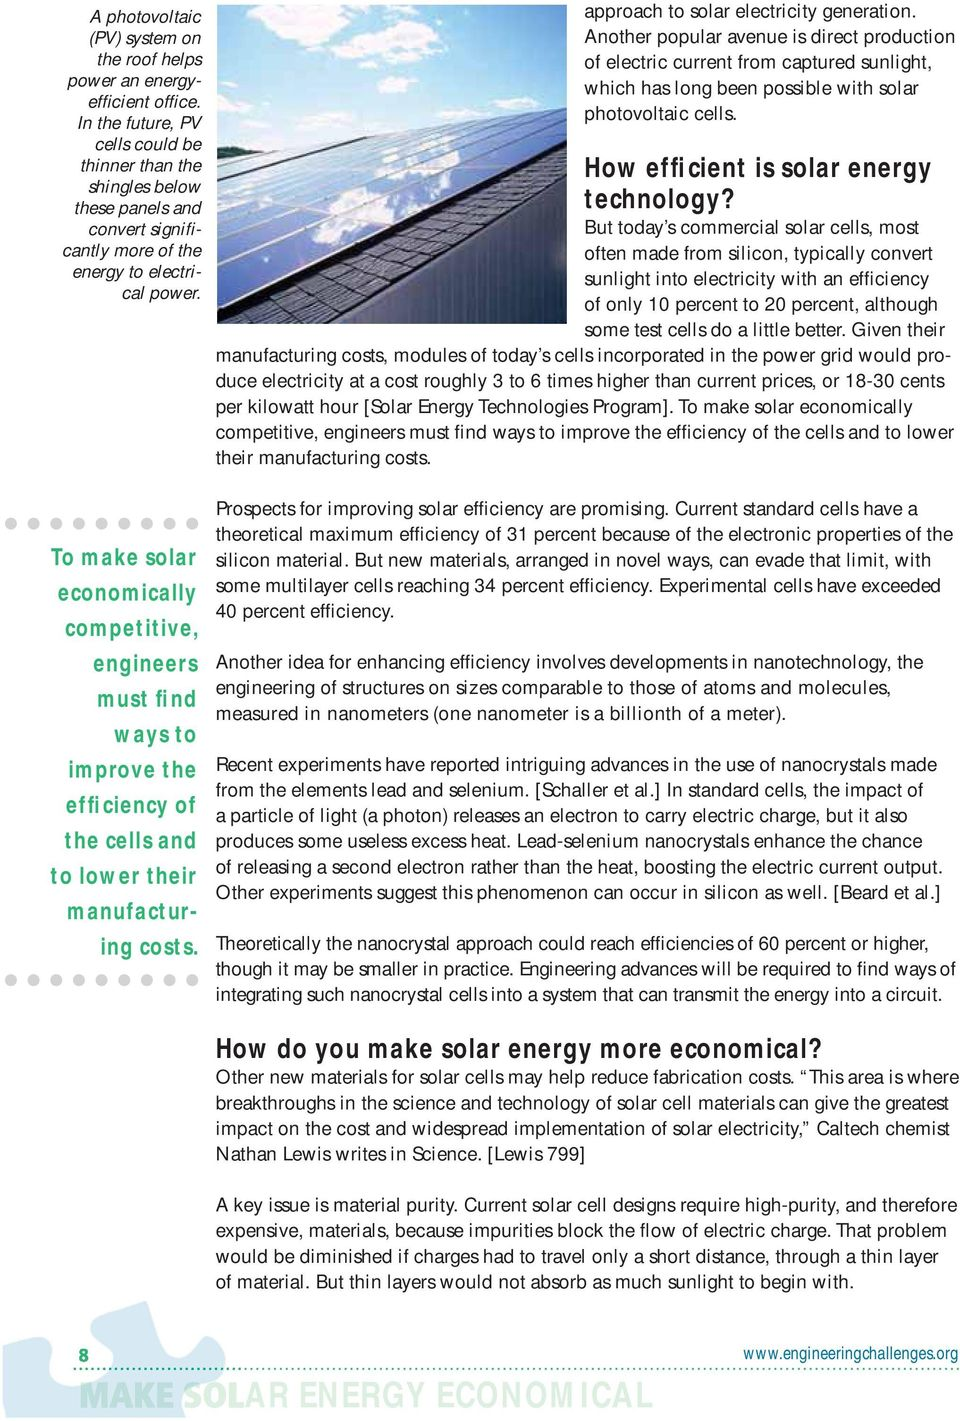 Another popular avenue is direct production of electric current from captured sunlight, which has long been possible with solar photovoltaic cells. How efficient is solar energy technology?